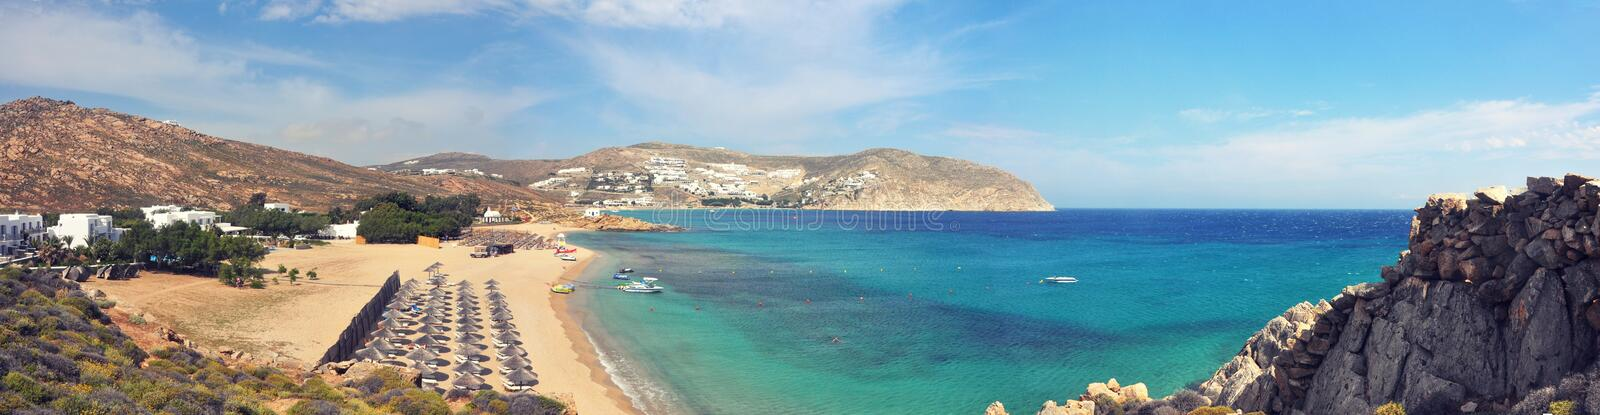 Panoramic view over beach on greek island Mykonos stock image